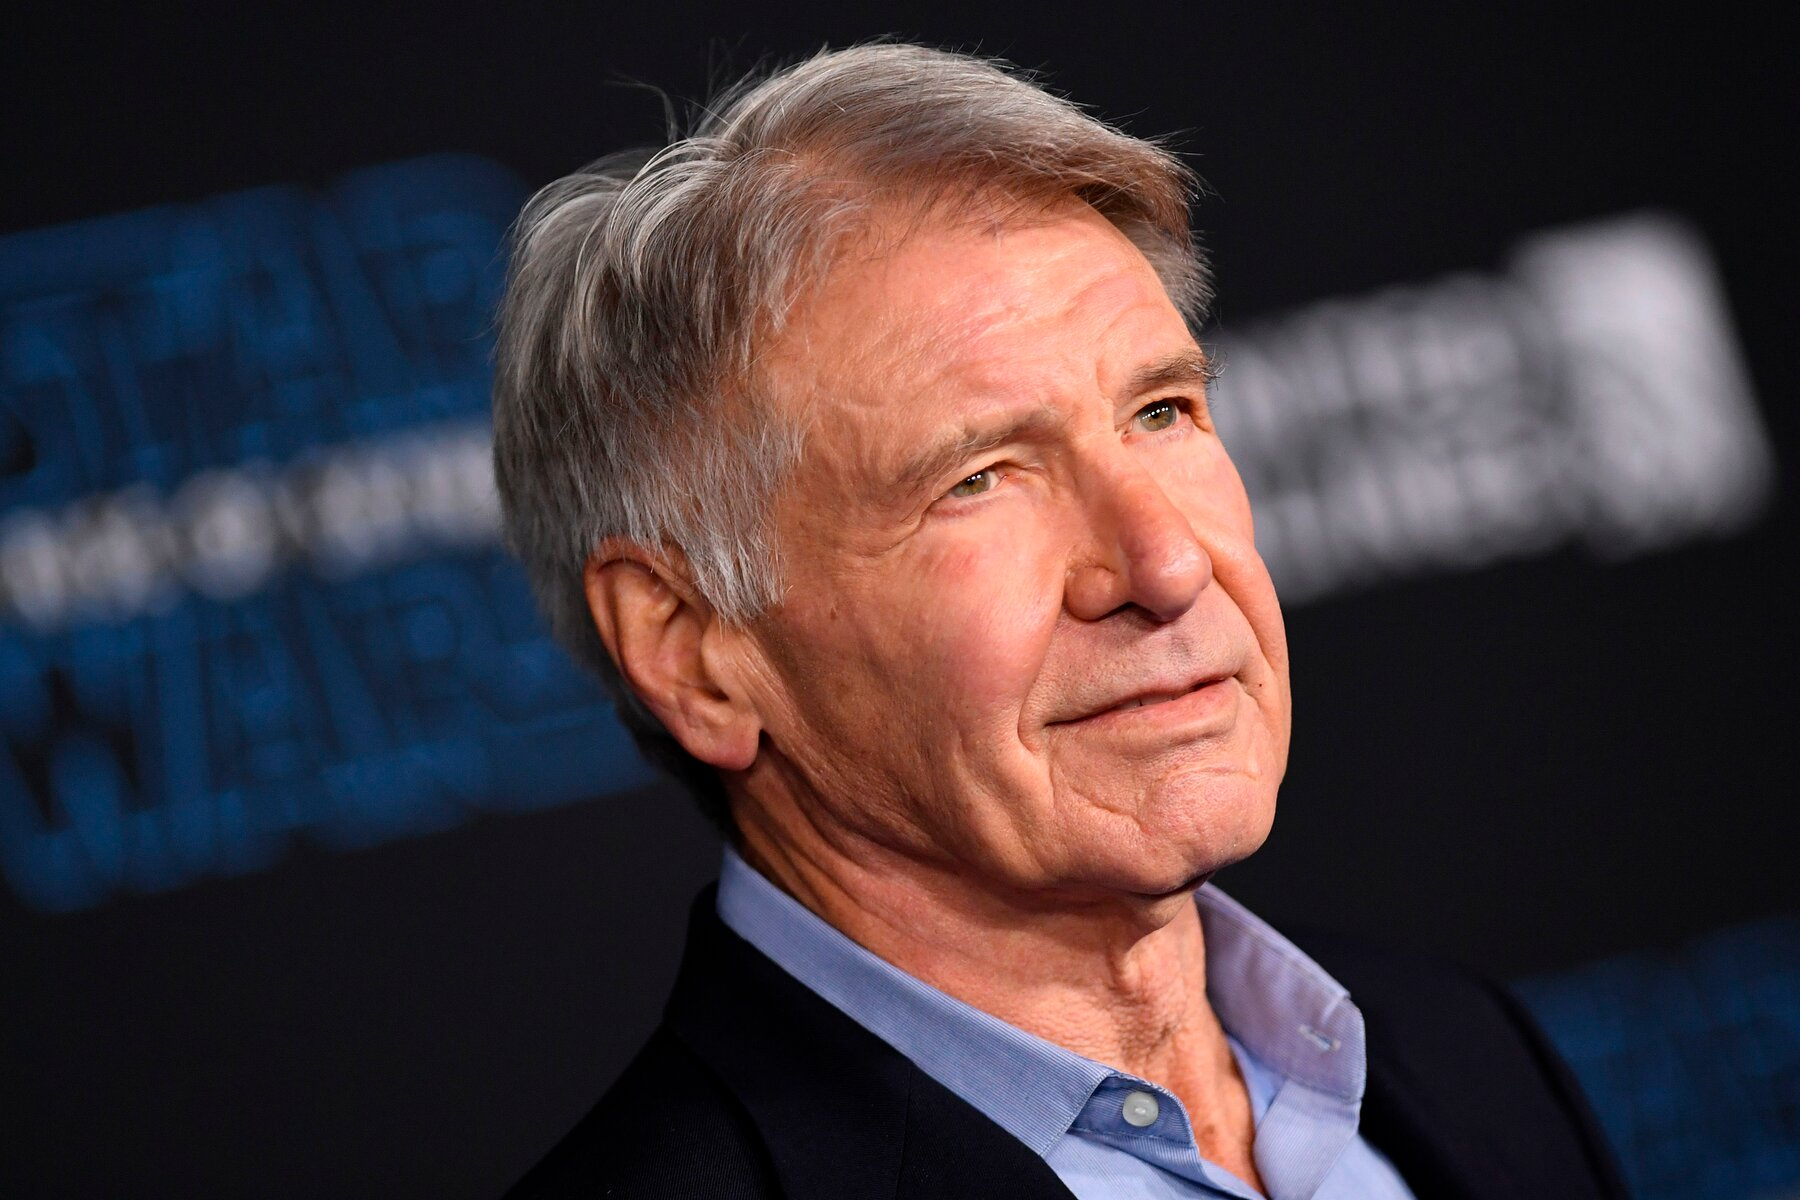 Harrison Ford Biography, Facts & Life Story Updated 2021